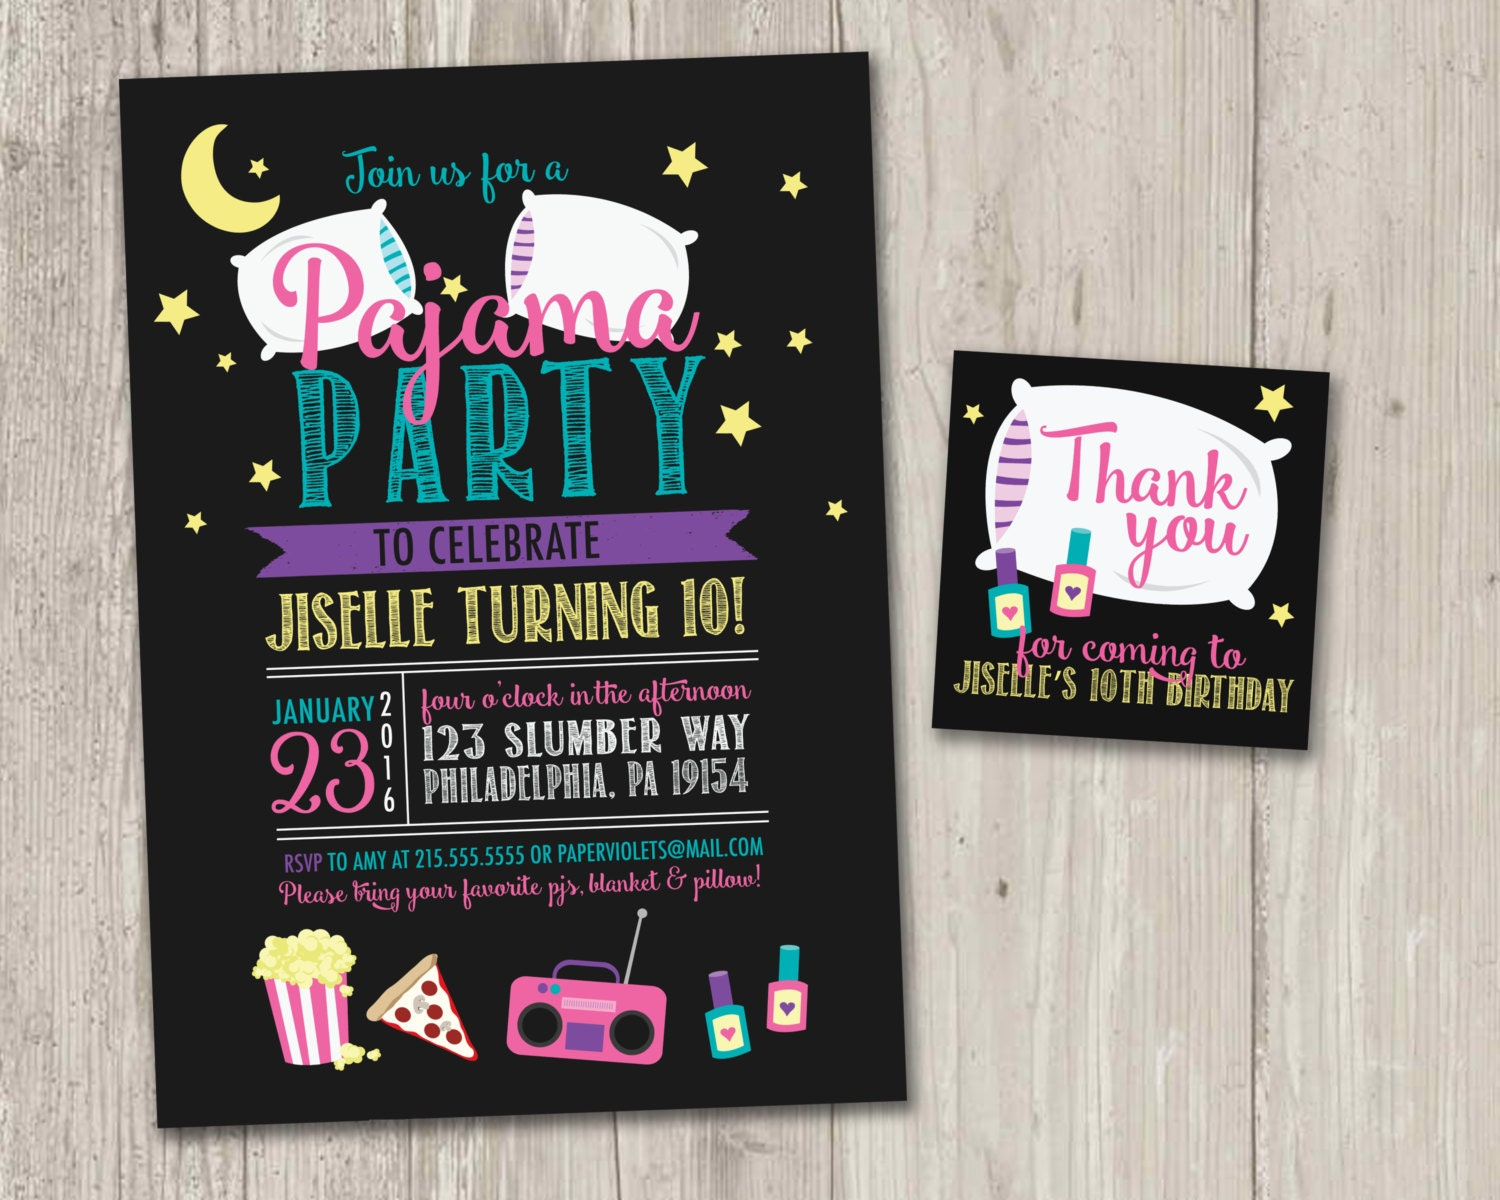 Best Pajama Party Invitation Gallery - Invitation Card Ideas ...